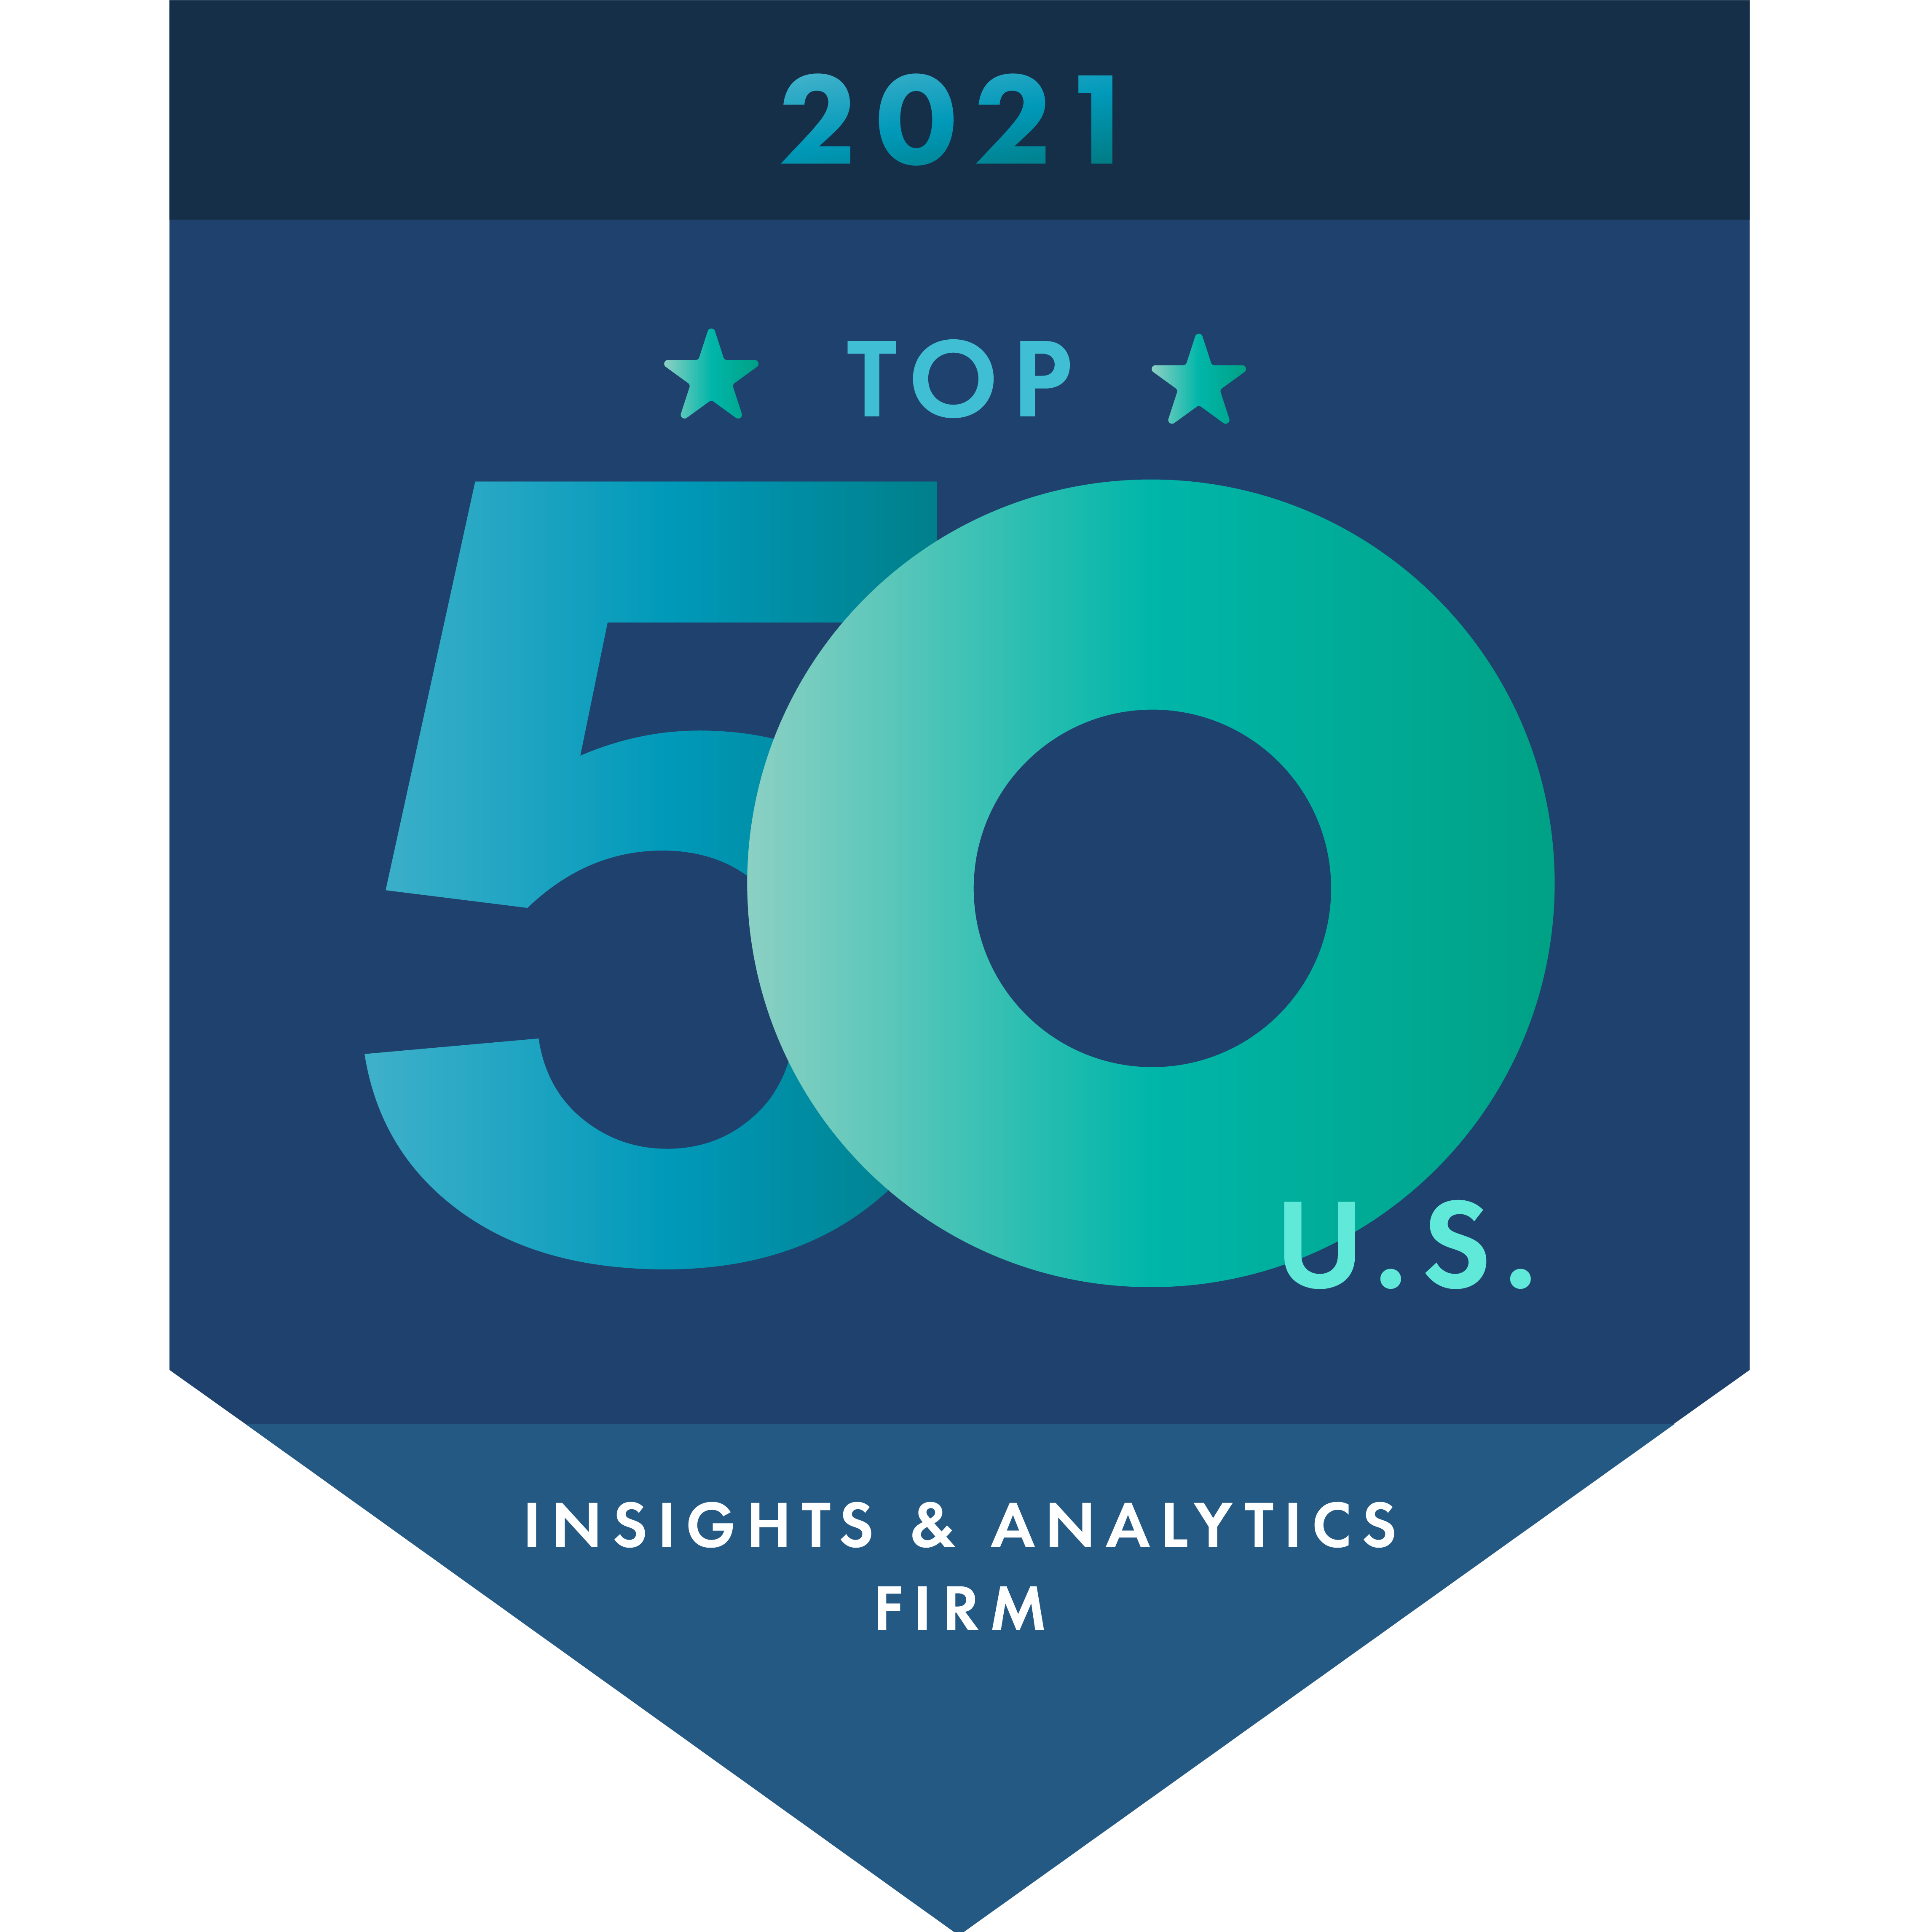 2021 Top 50 Insights and Analytics Firms logo